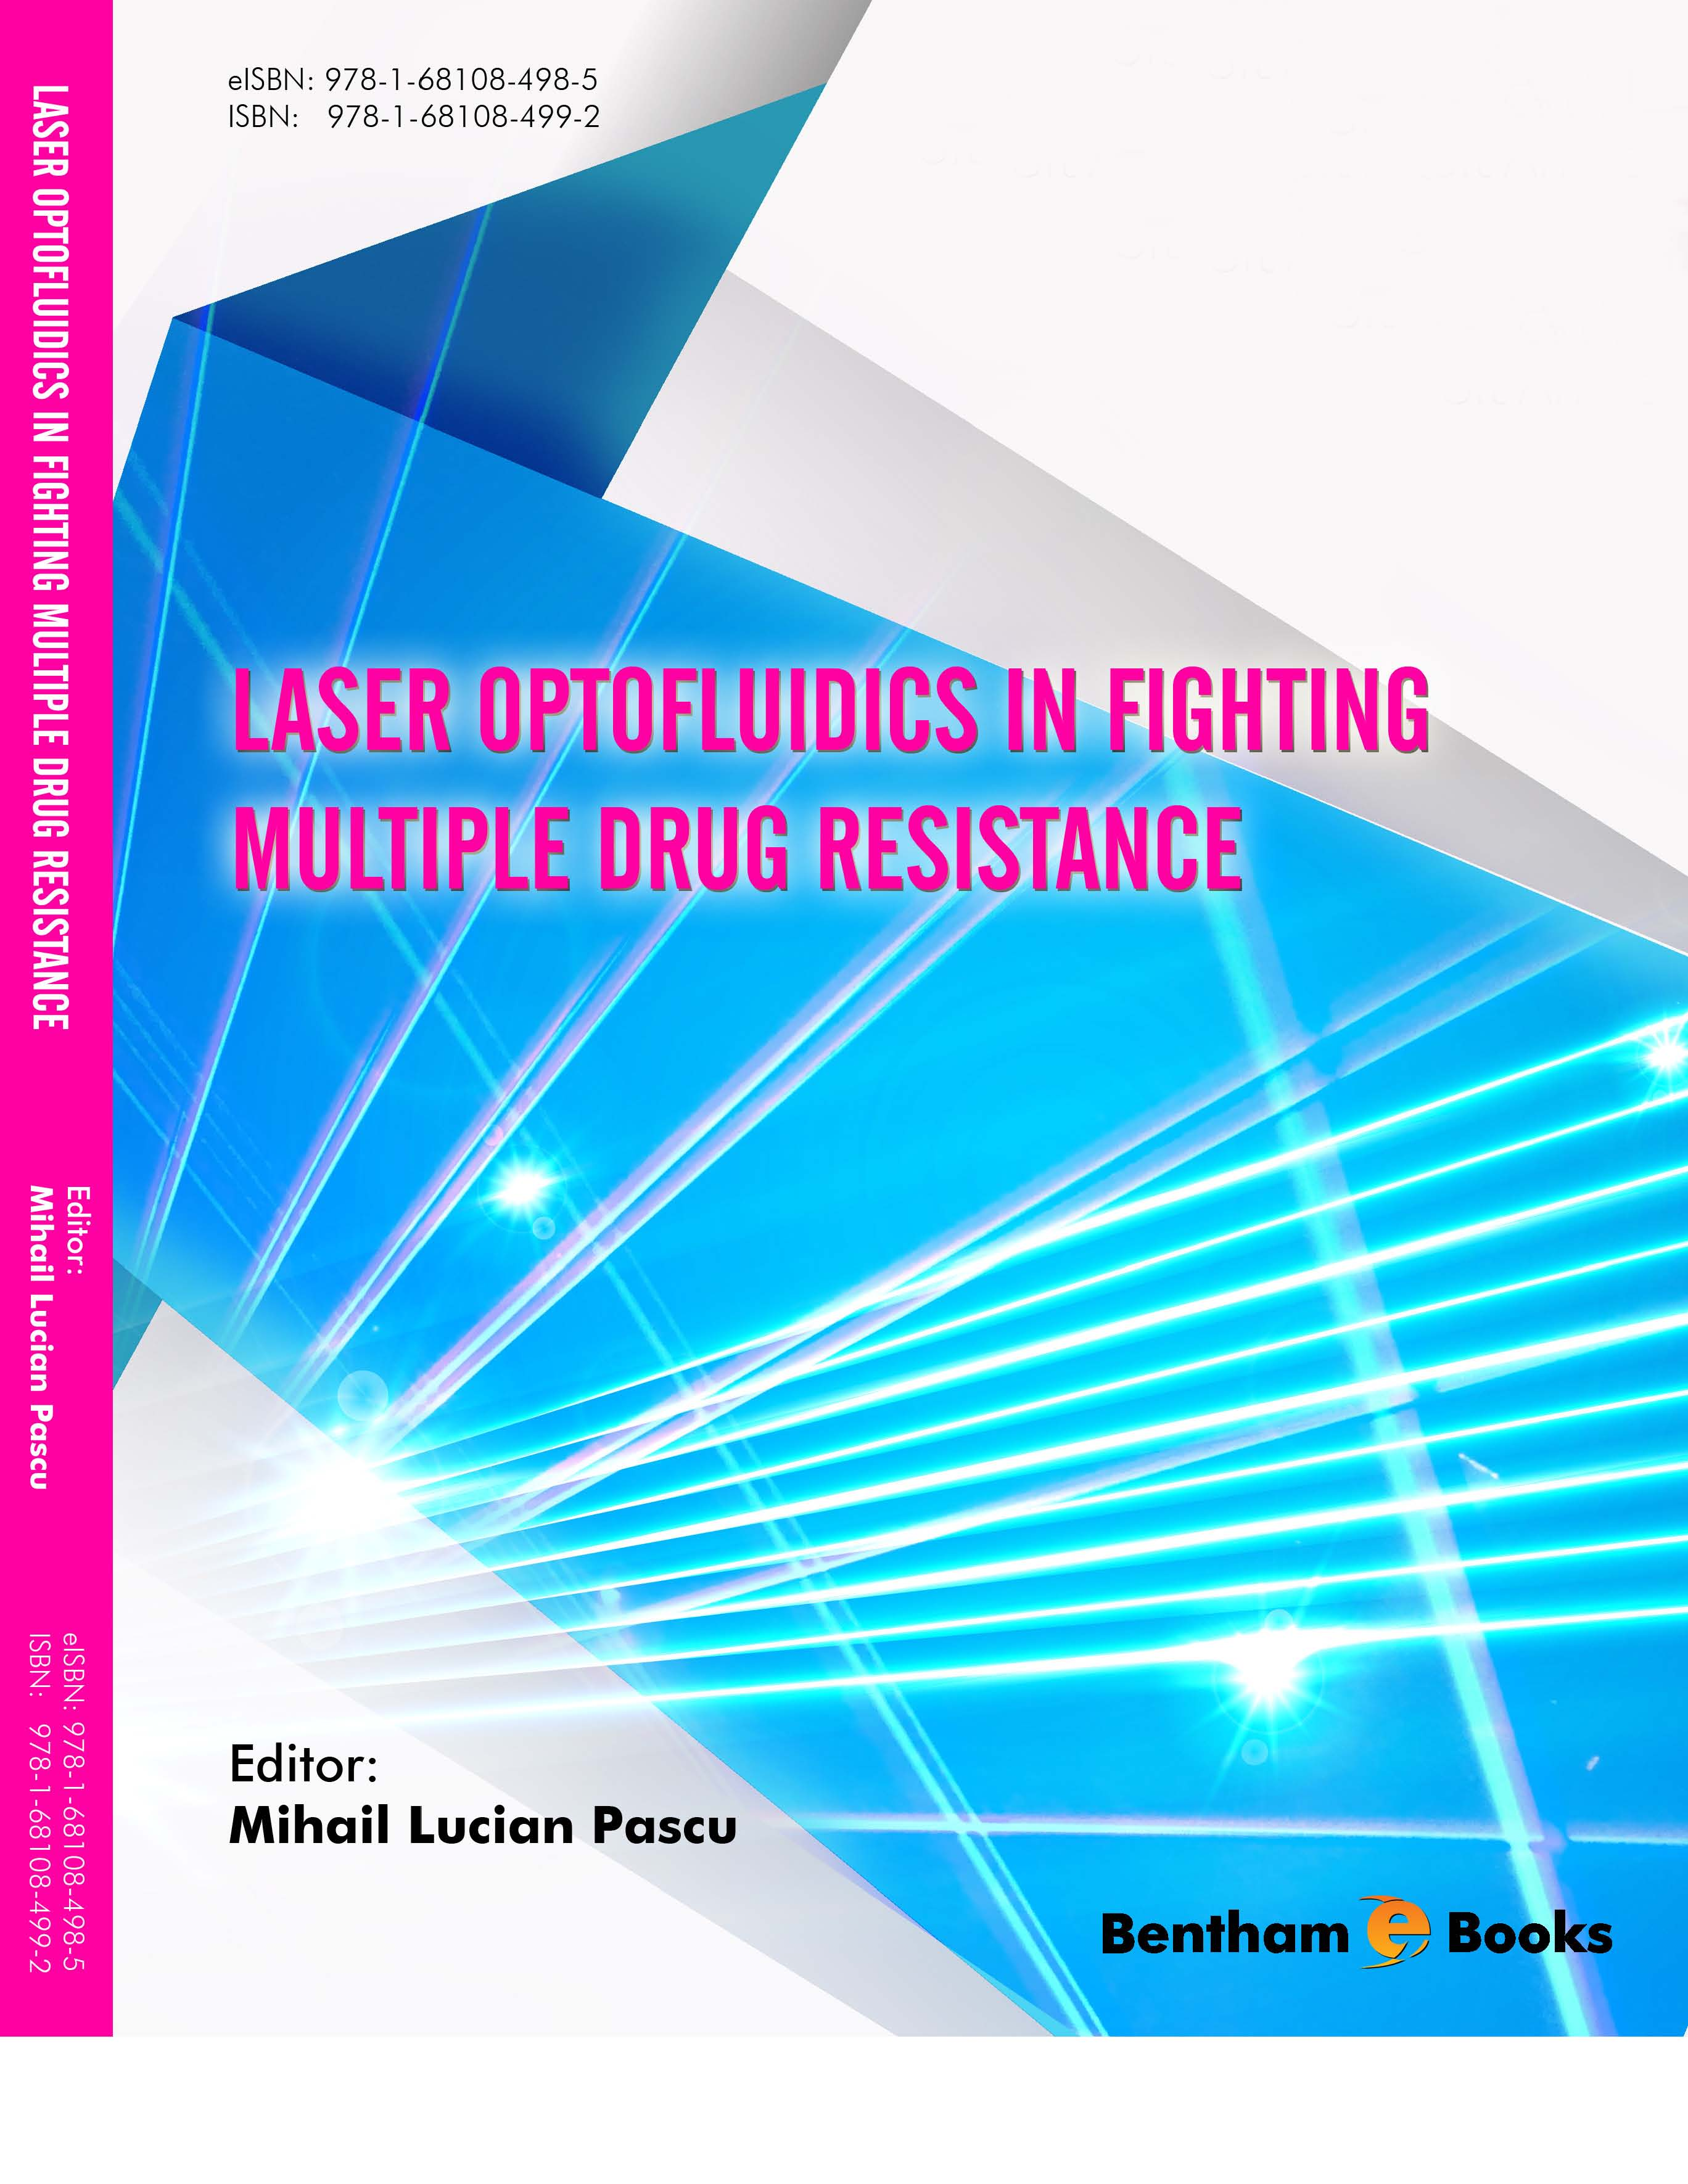 Laser Optofluidics in Fighting Multiple Drug Resistance